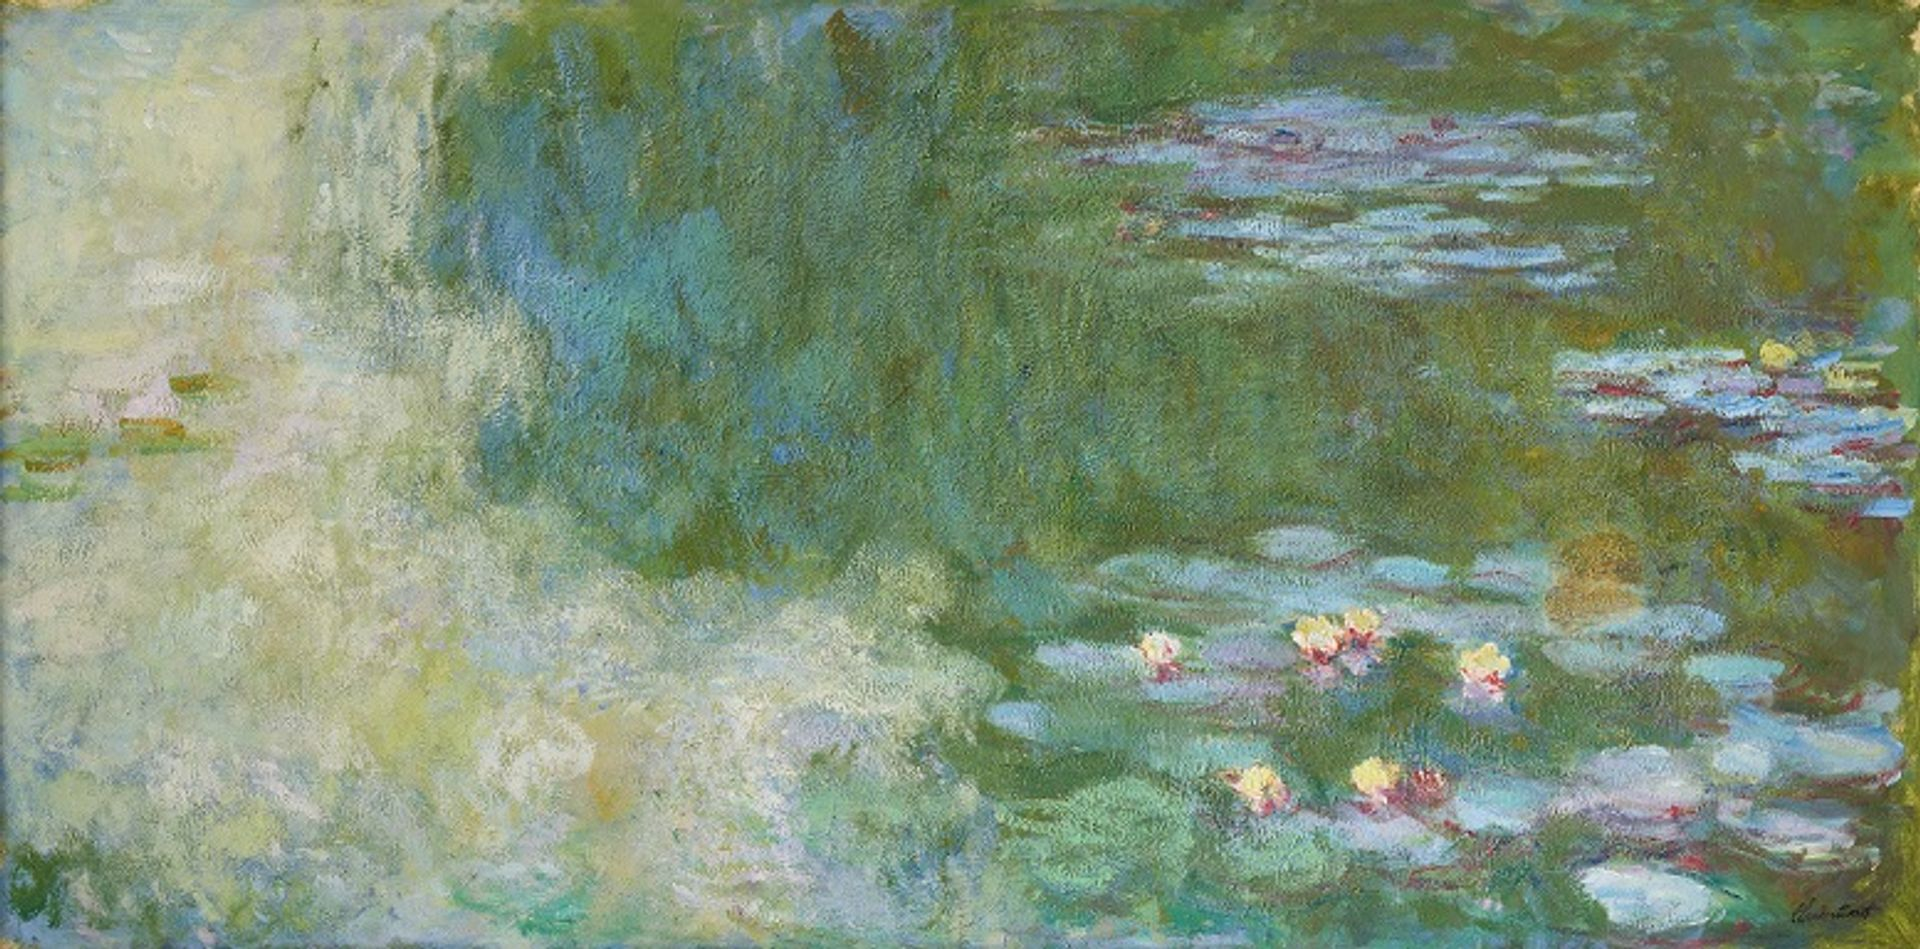 Claude Monet's Le Bassin aux Nympheas is among the works to be donated Courtesy of MMCA